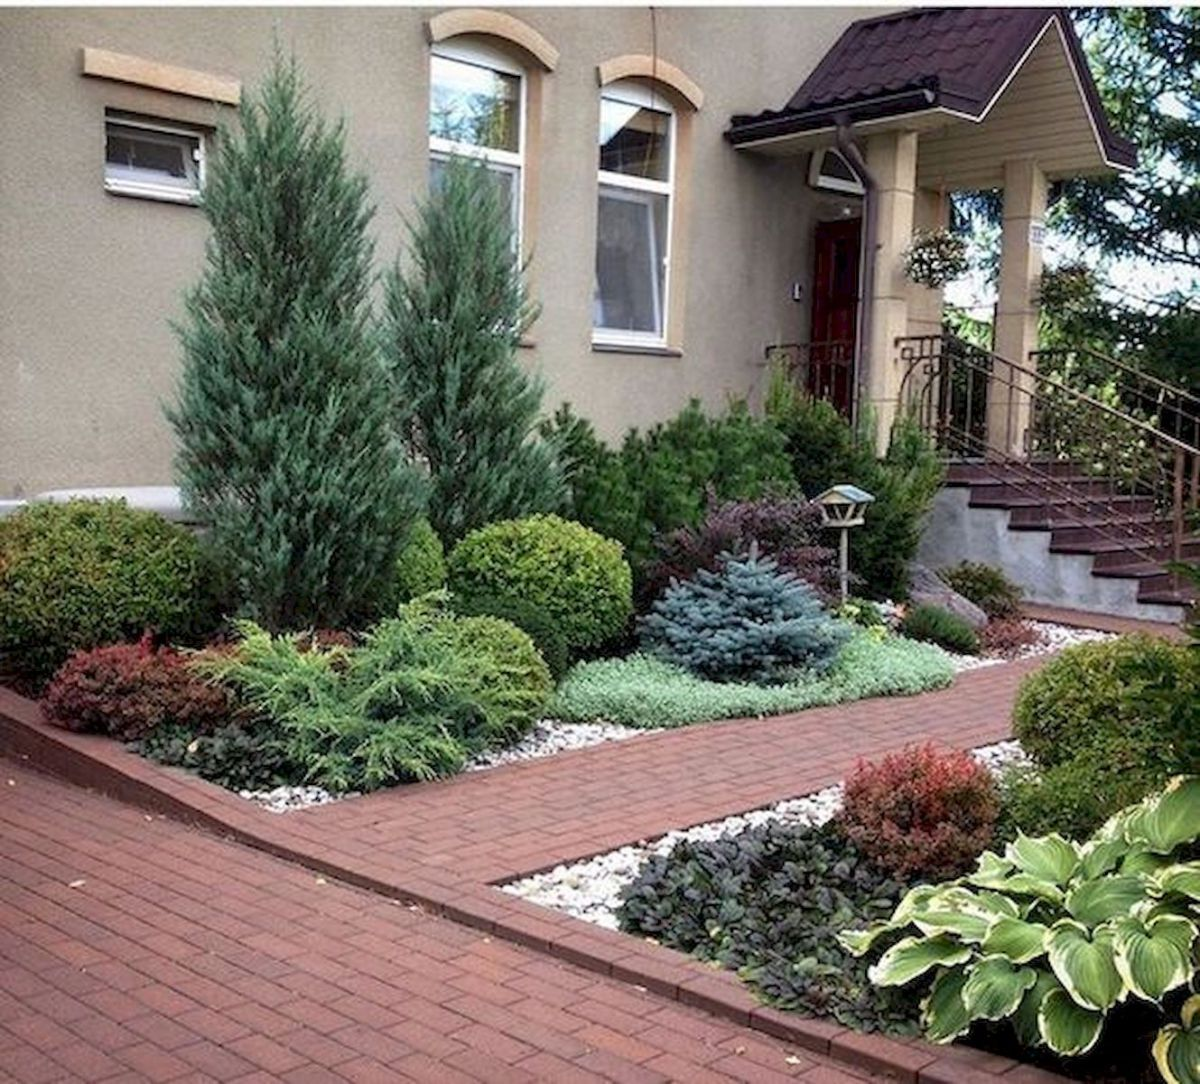 90 Simple And Beautiful Front Yard Landscaping Ideas On A Budget 63 Front Landscaping Front Yard Garden Front Yard Landscaping Design